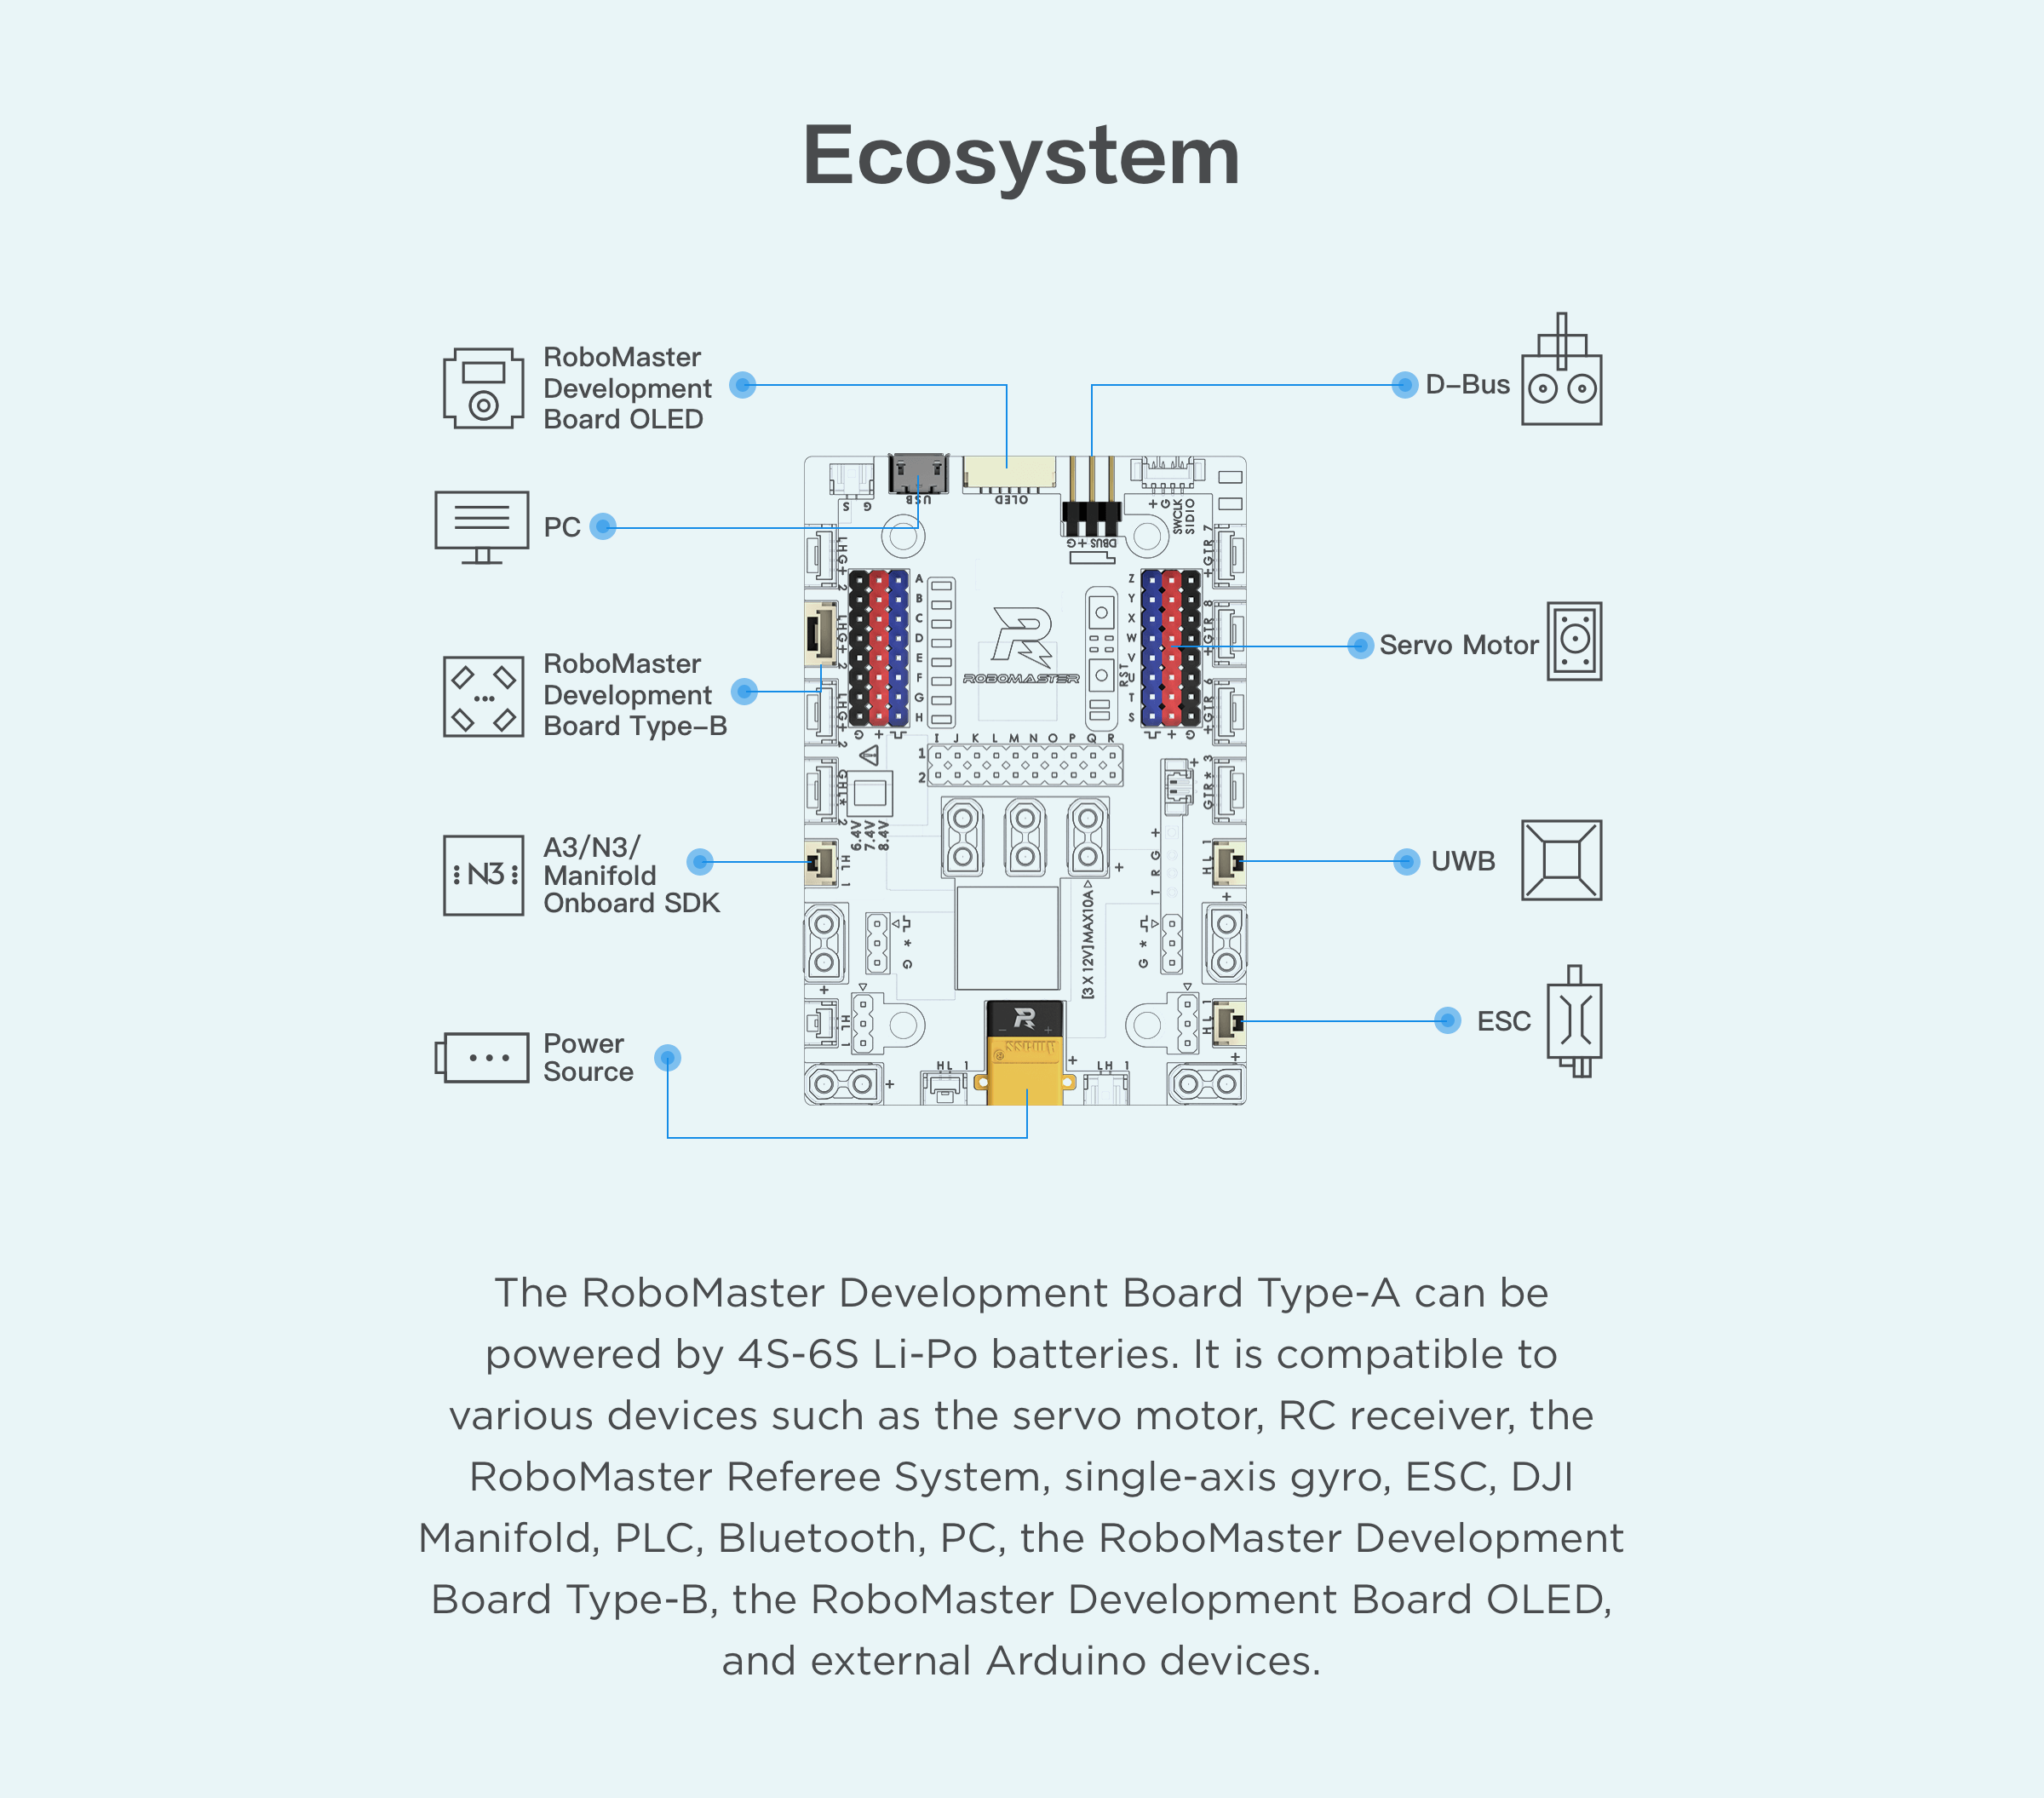 Ecosystem of Development Board